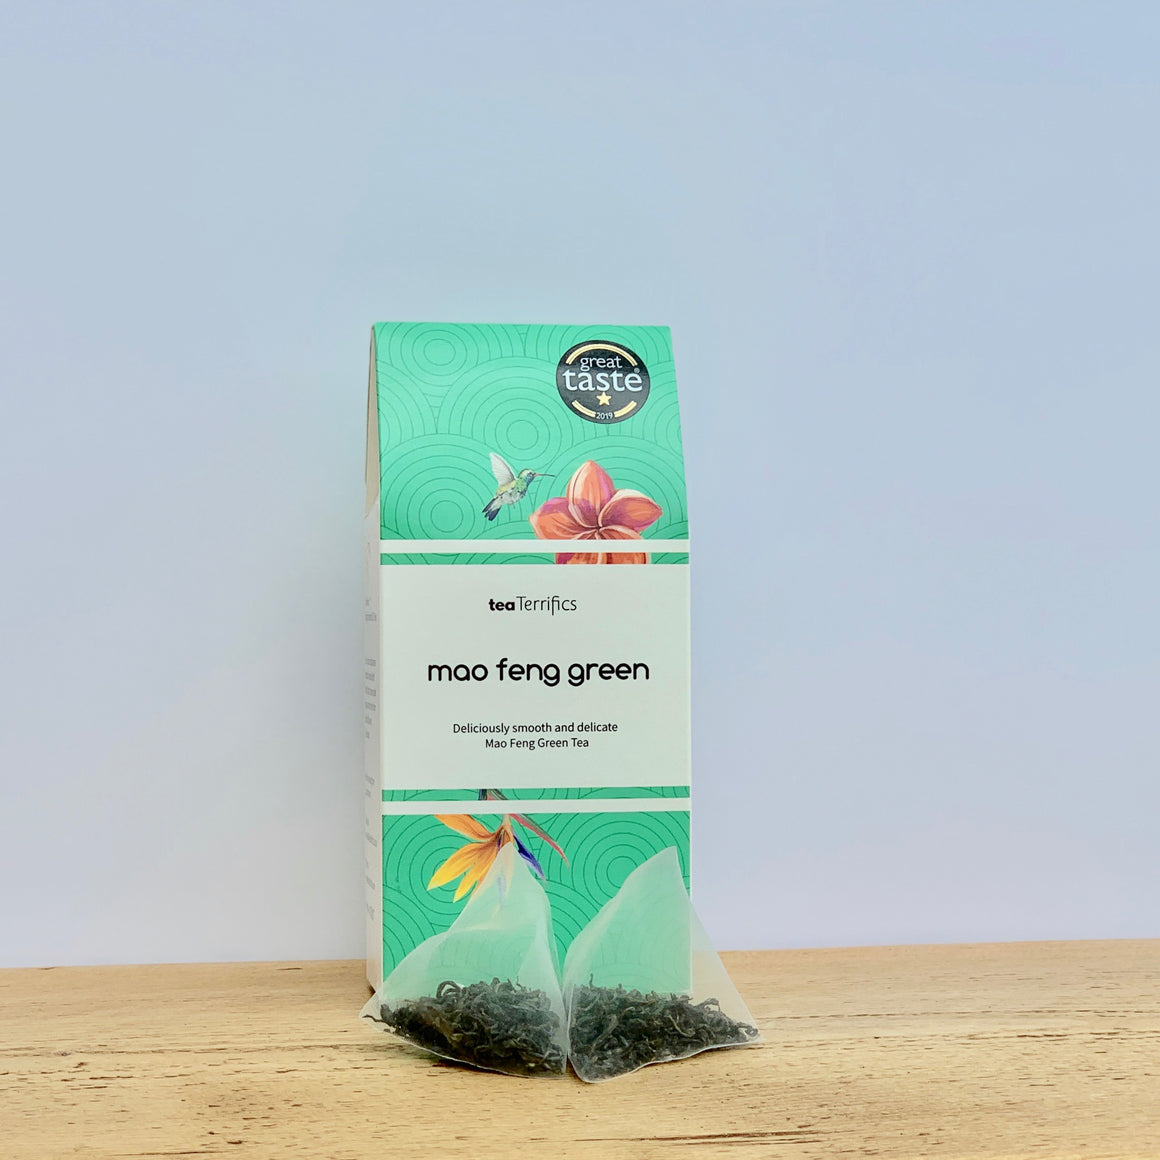 Mao Feng Green Tea - Smooth & Mellow Green Tea - 17 Biodegradable Tea Bags